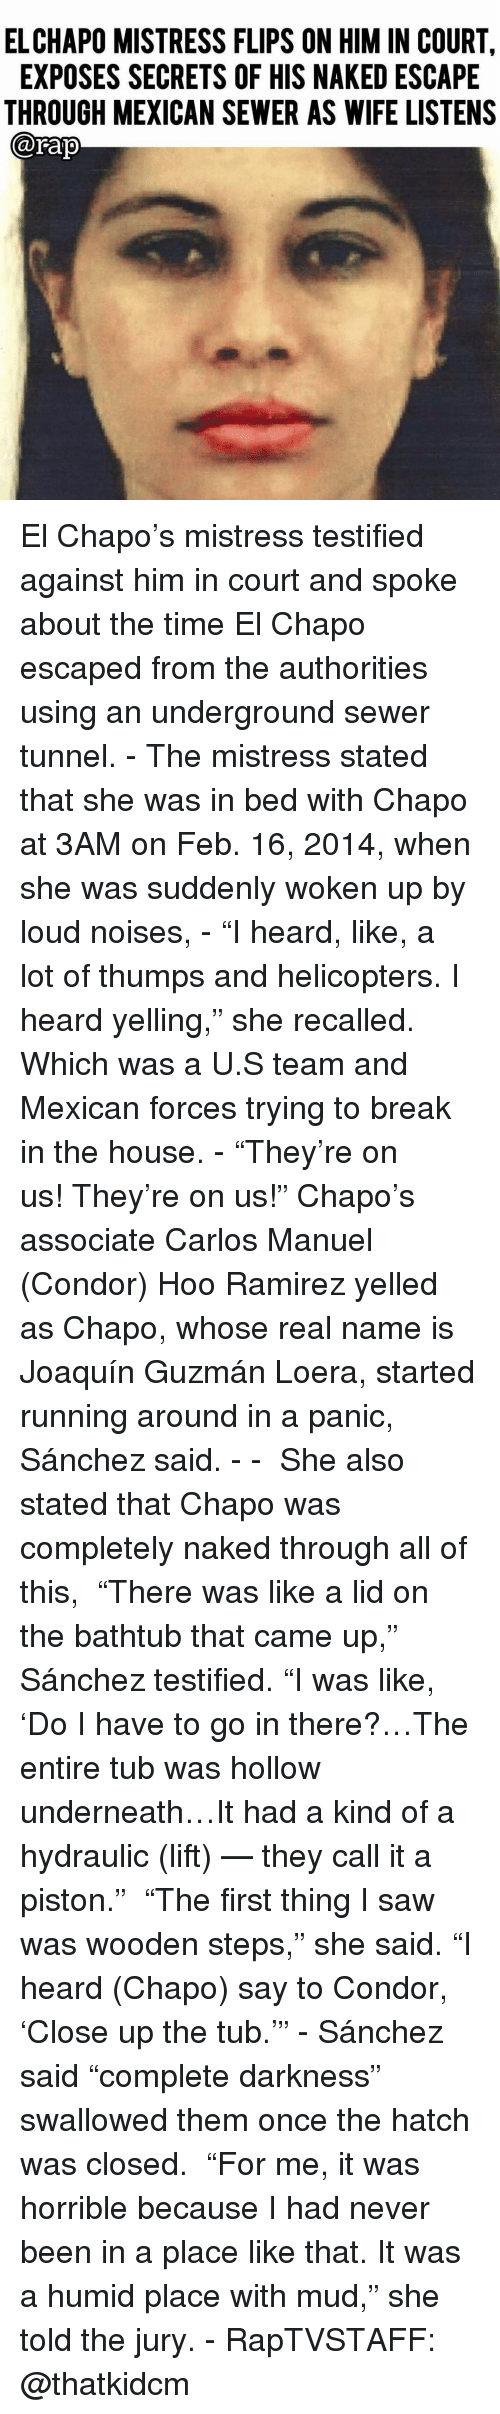 """sewer: ELCHAPO MISTRESS FLIPS ON HIM IN COURT,  EXPOSES SECRETS OF HIS NAKED ESCAPE  THROUGH MEXICAN SEWER AS WIFE LISTENS  @Fap El Chapo's mistress testified against him in court and spoke about the time El Chapo escaped from the authorities using an underground sewer tunnel. - The mistress stated that she was in bed with Chapo at 3AM on Feb. 16, 2014, when she was suddenly woken up by loud noises, - """"I heard, like, a lot of thumps and helicopters. I heard yelling,"""" she recalled. Which was a U.S team and Mexican forces trying to break in the house. - """"They're on us! They're on us!"""" Chapo's associate Carlos Manuel (Condor) Hoo Ramirez yelled as Chapo, whose real name is Joaquín Guzmán Loera, started running around in a panic, Sánchez said. - -  She also stated that Chapo was completely naked through all of this,  """"There was like a lid on the bathtub that came up,"""" Sánchez testified. """"I was like, 'Do I have to go in there?…The entire tub was hollow underneath…It had a kind of a hydraulic (lift) — they call it a piston.""""  """"The first thing I saw was wooden steps,"""" she said. """"I heard (Chapo) say to Condor, 'Close up the tub.'"""" - Sánchez said """"complete darkness"""" swallowed them once the hatch was closed.  """"For me, it was horrible because I had never been in a place like that. It was a humid place with mud,"""" she told the jury. - RapTVSTAFF: @thatkidcm"""